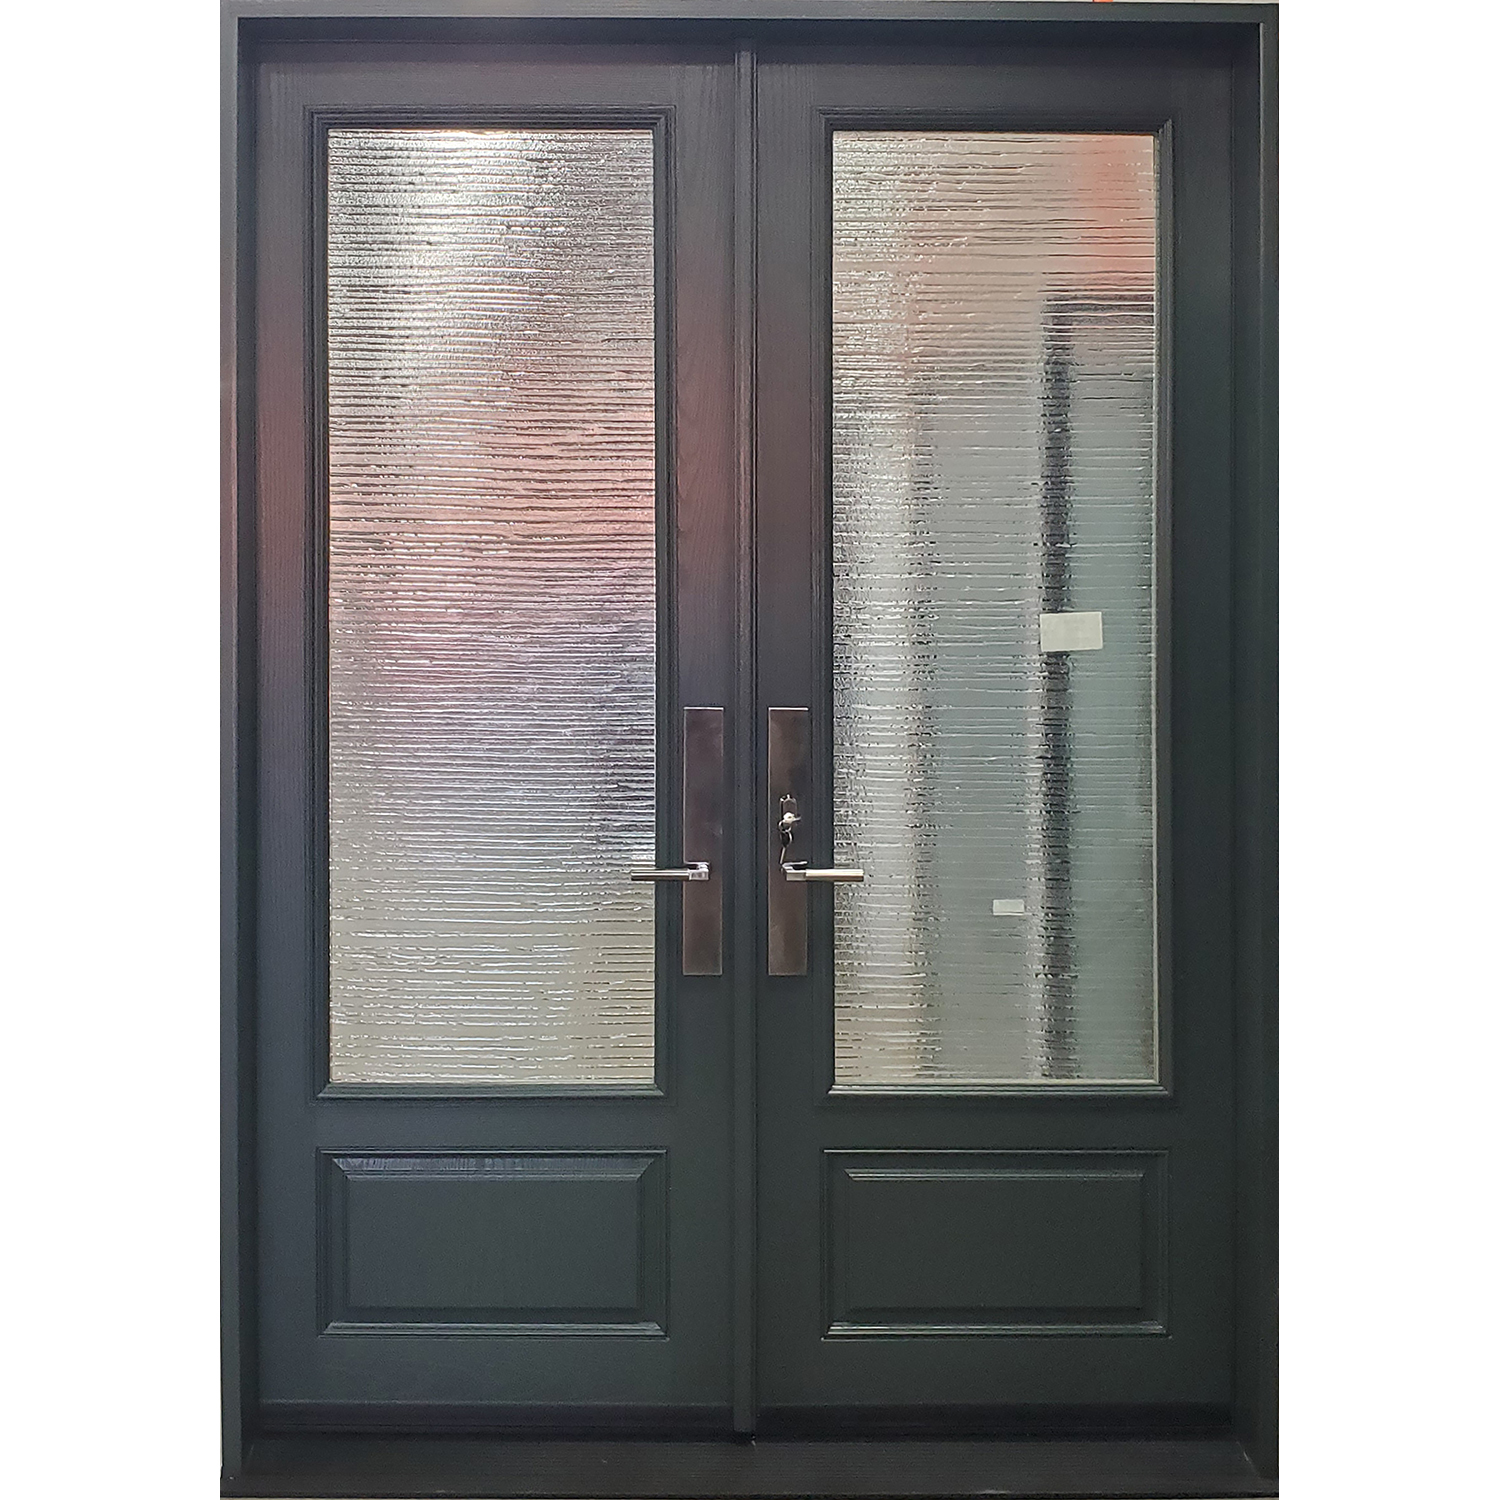 8' Oak textured fiberglass French door with 3/4 textured glass